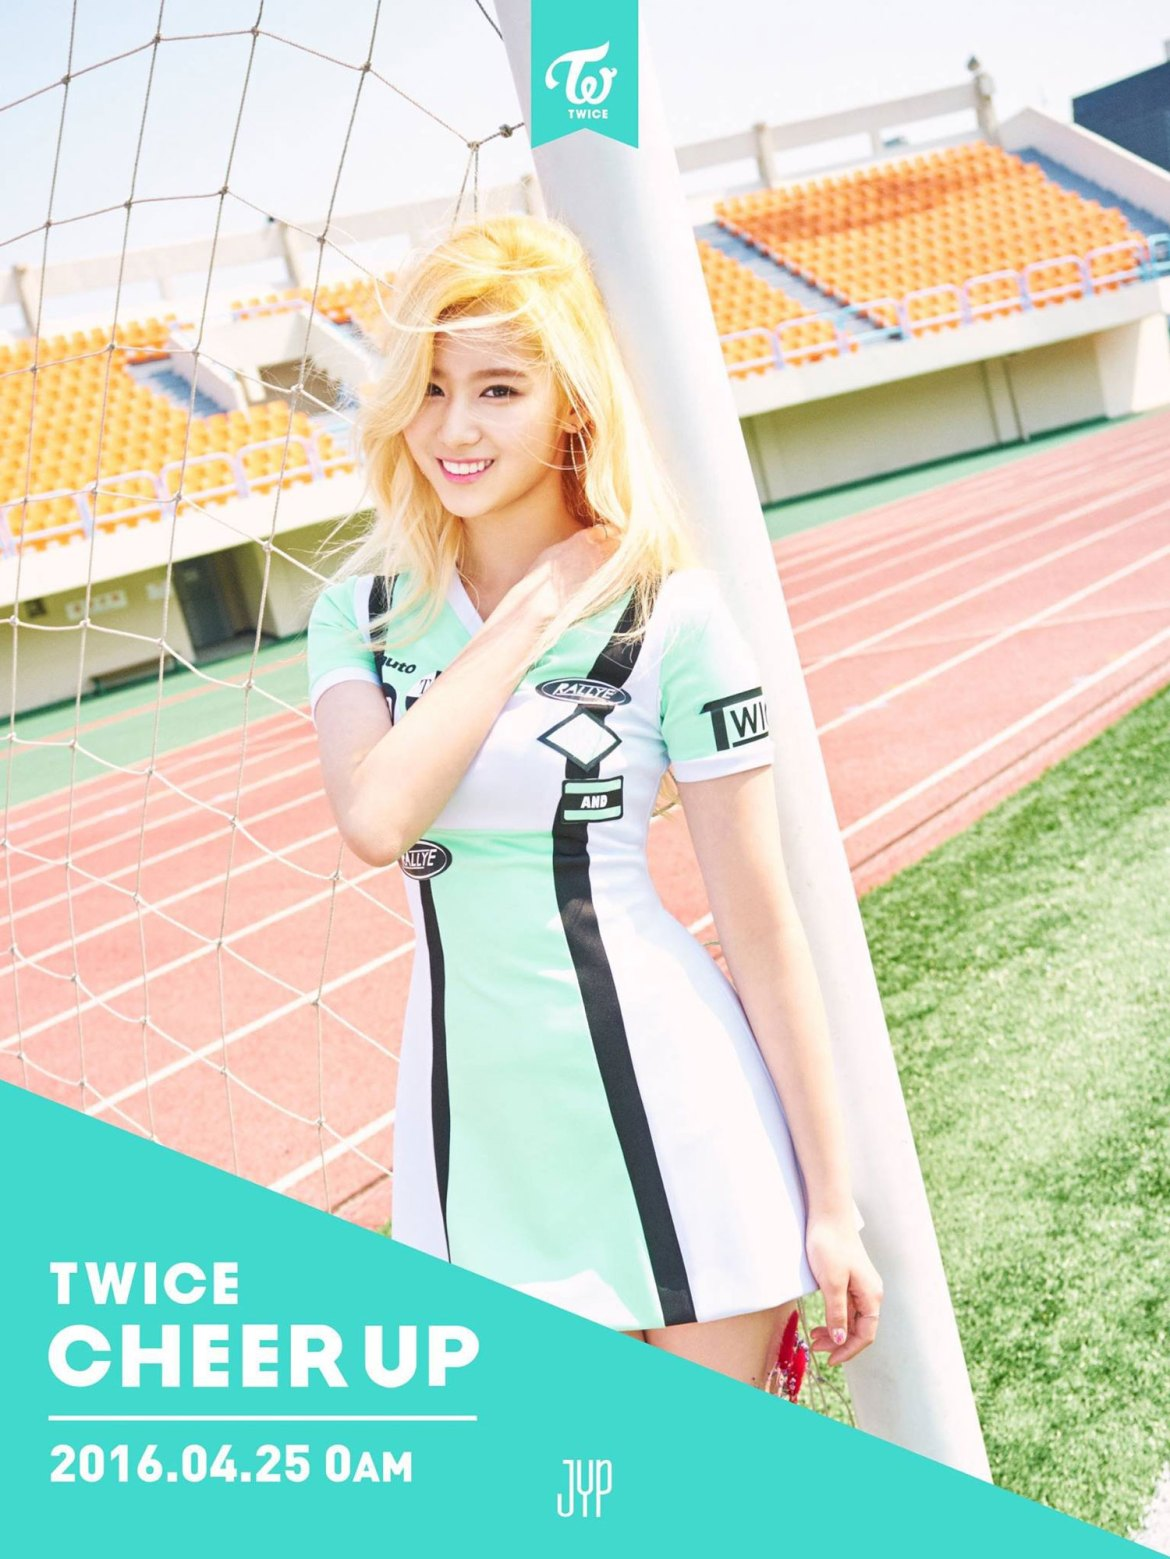 TWICE Sana Cheer Up album concept photo